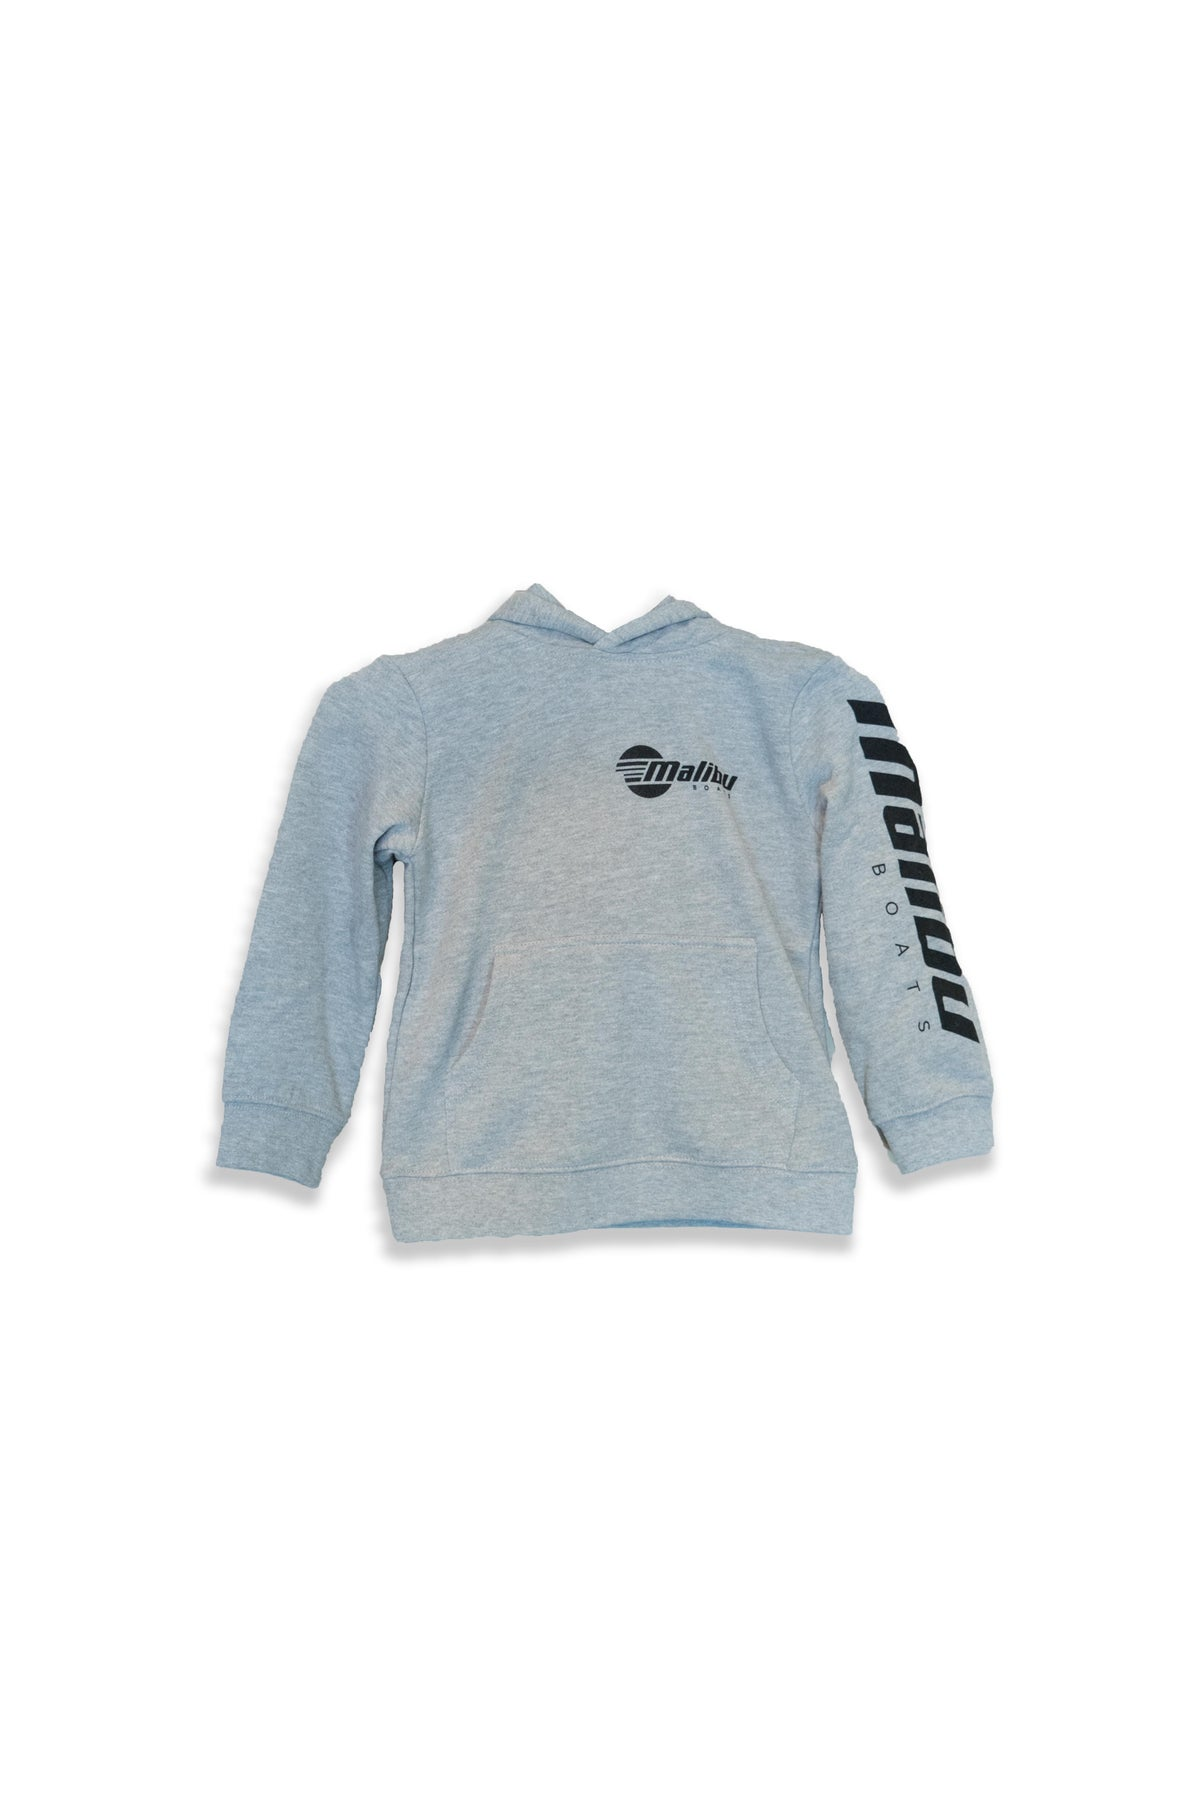 Image of Malibu Kid's Hoodie - Black & Grey Marle